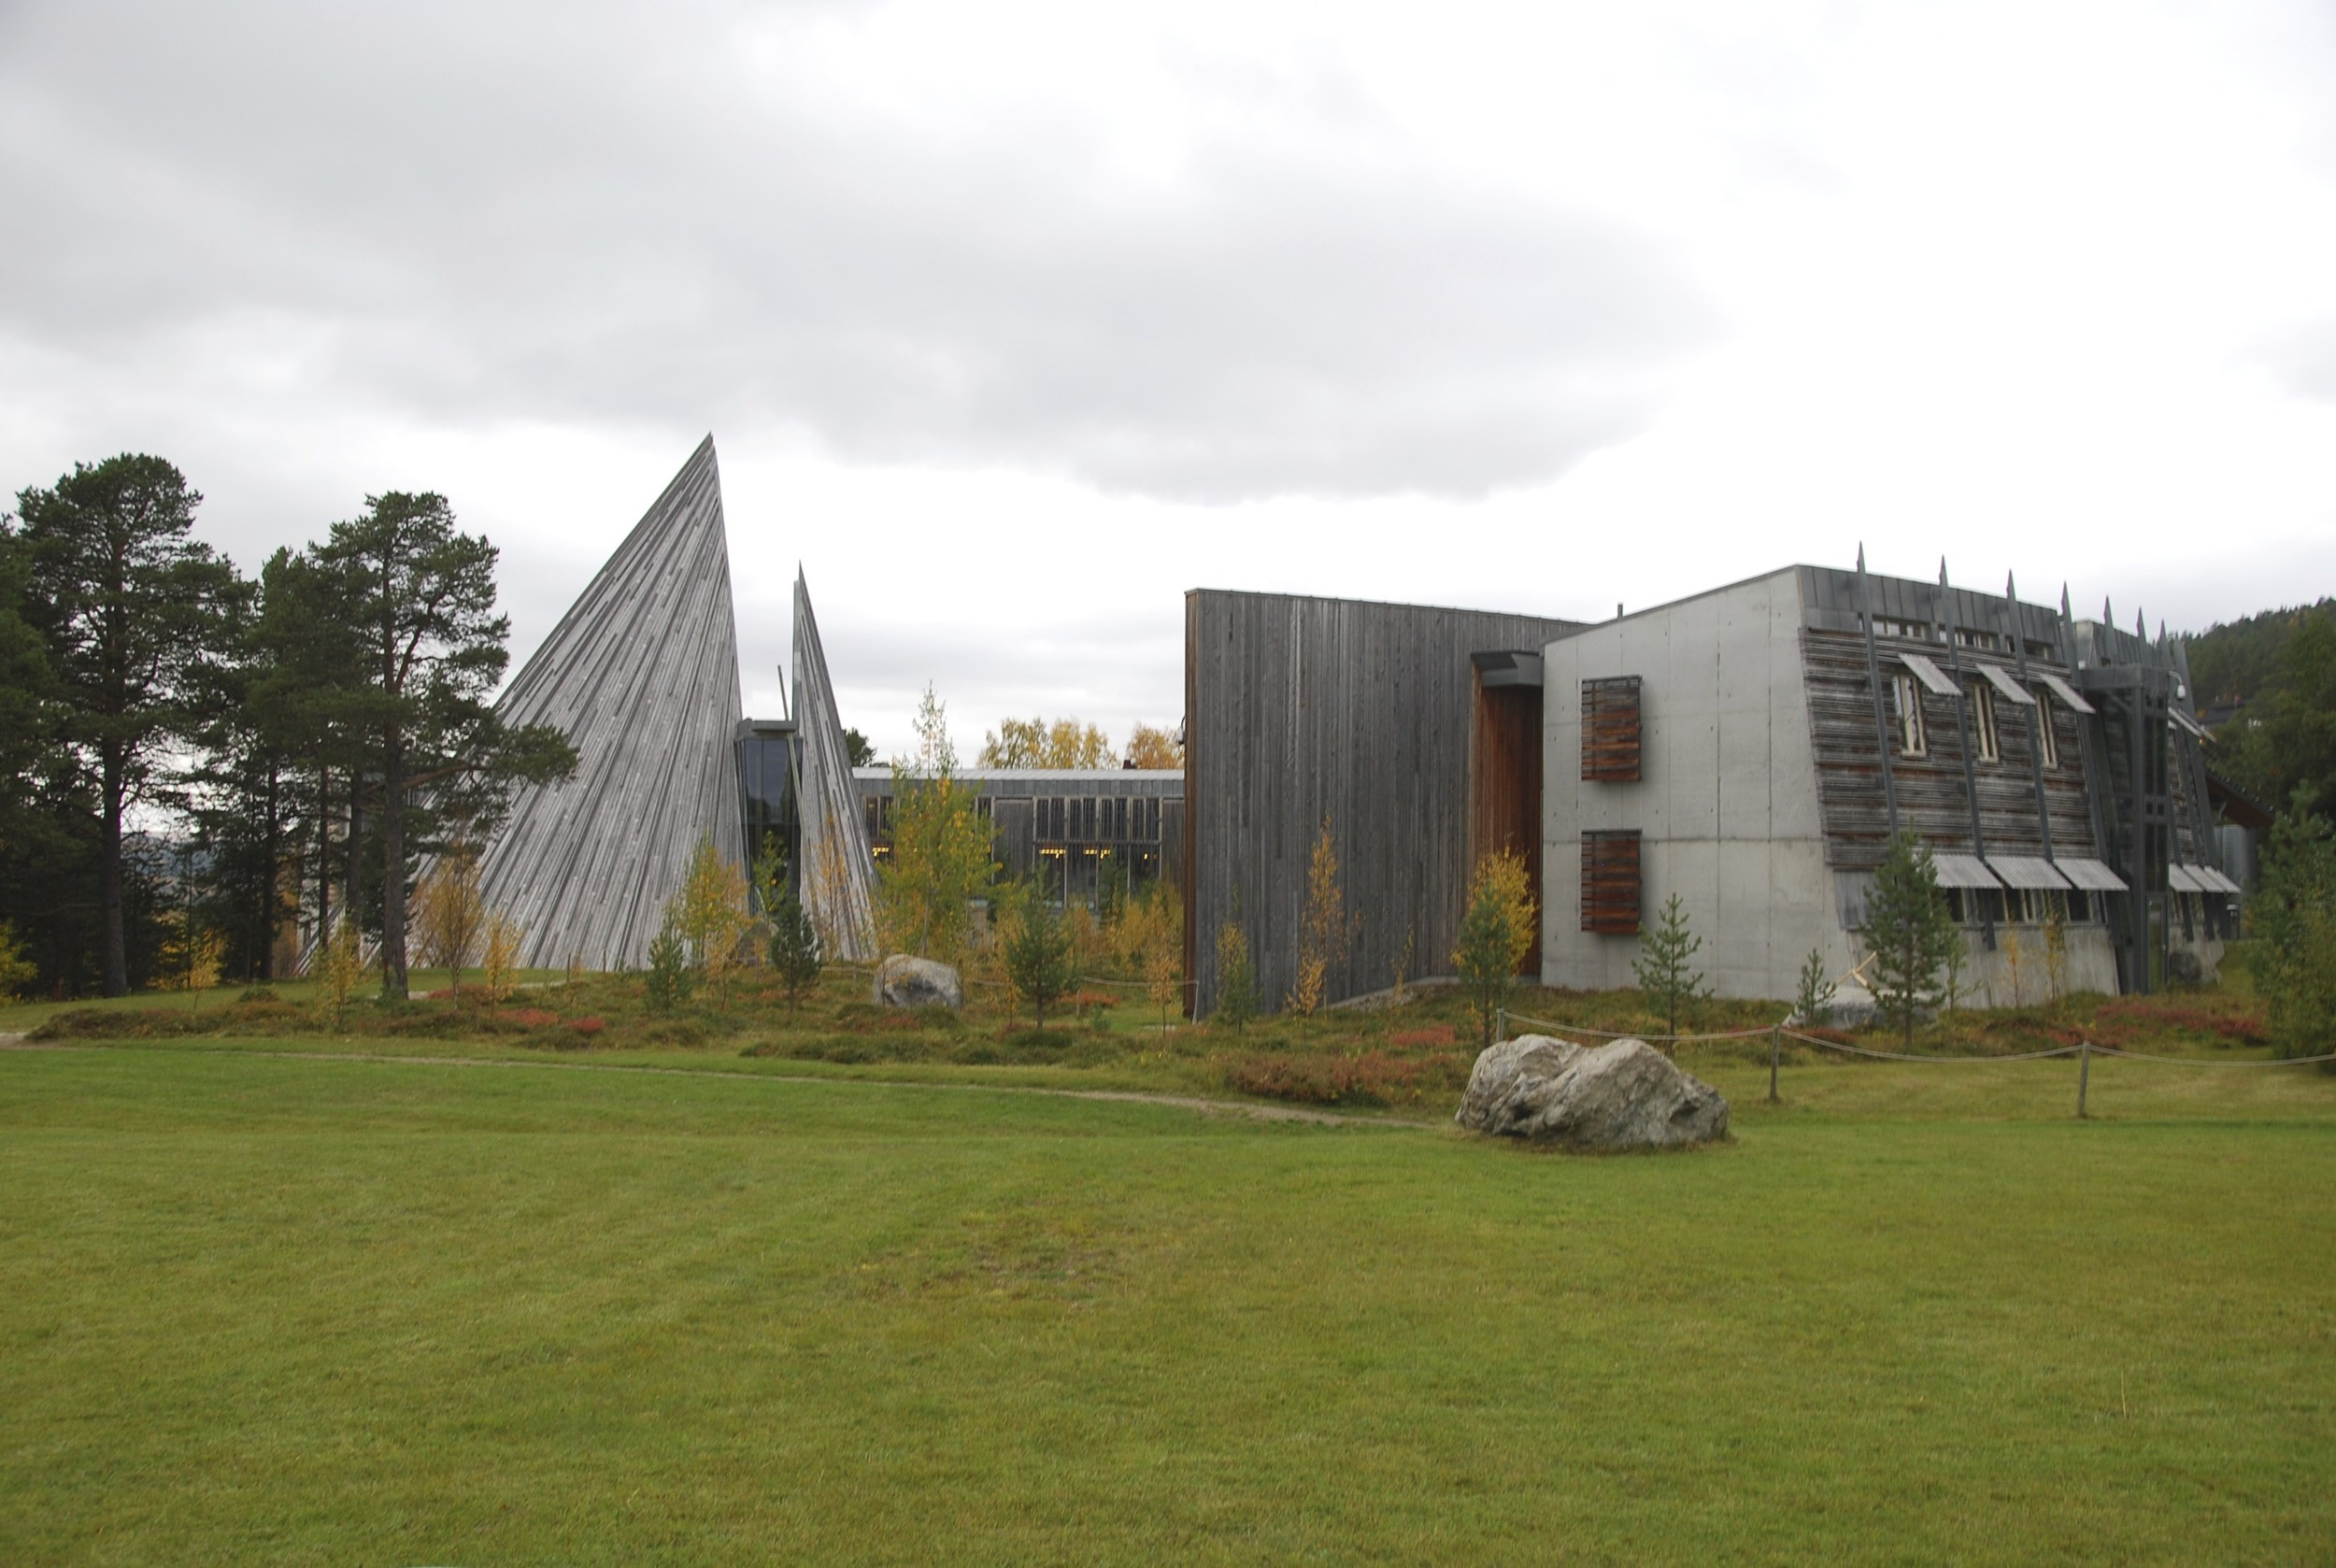 The Sámi parliament building in Karasjok, Norway